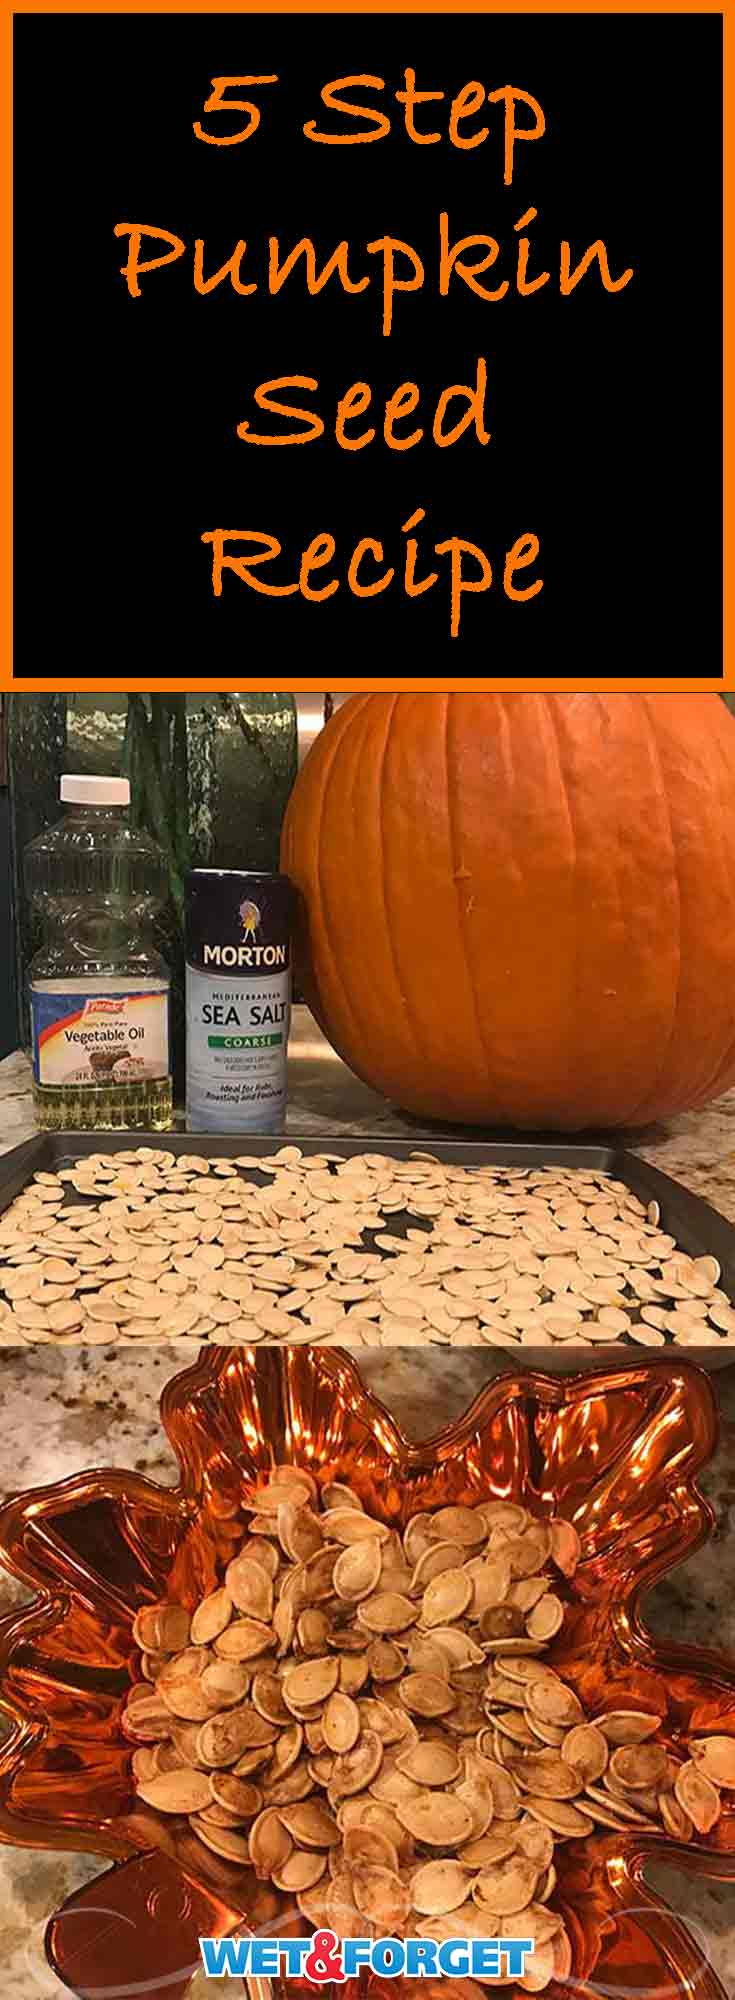 Need a quick and easy pumpkin seed recipe? Use our favorite recipe for making perfectly roasted pumpkin seeds!